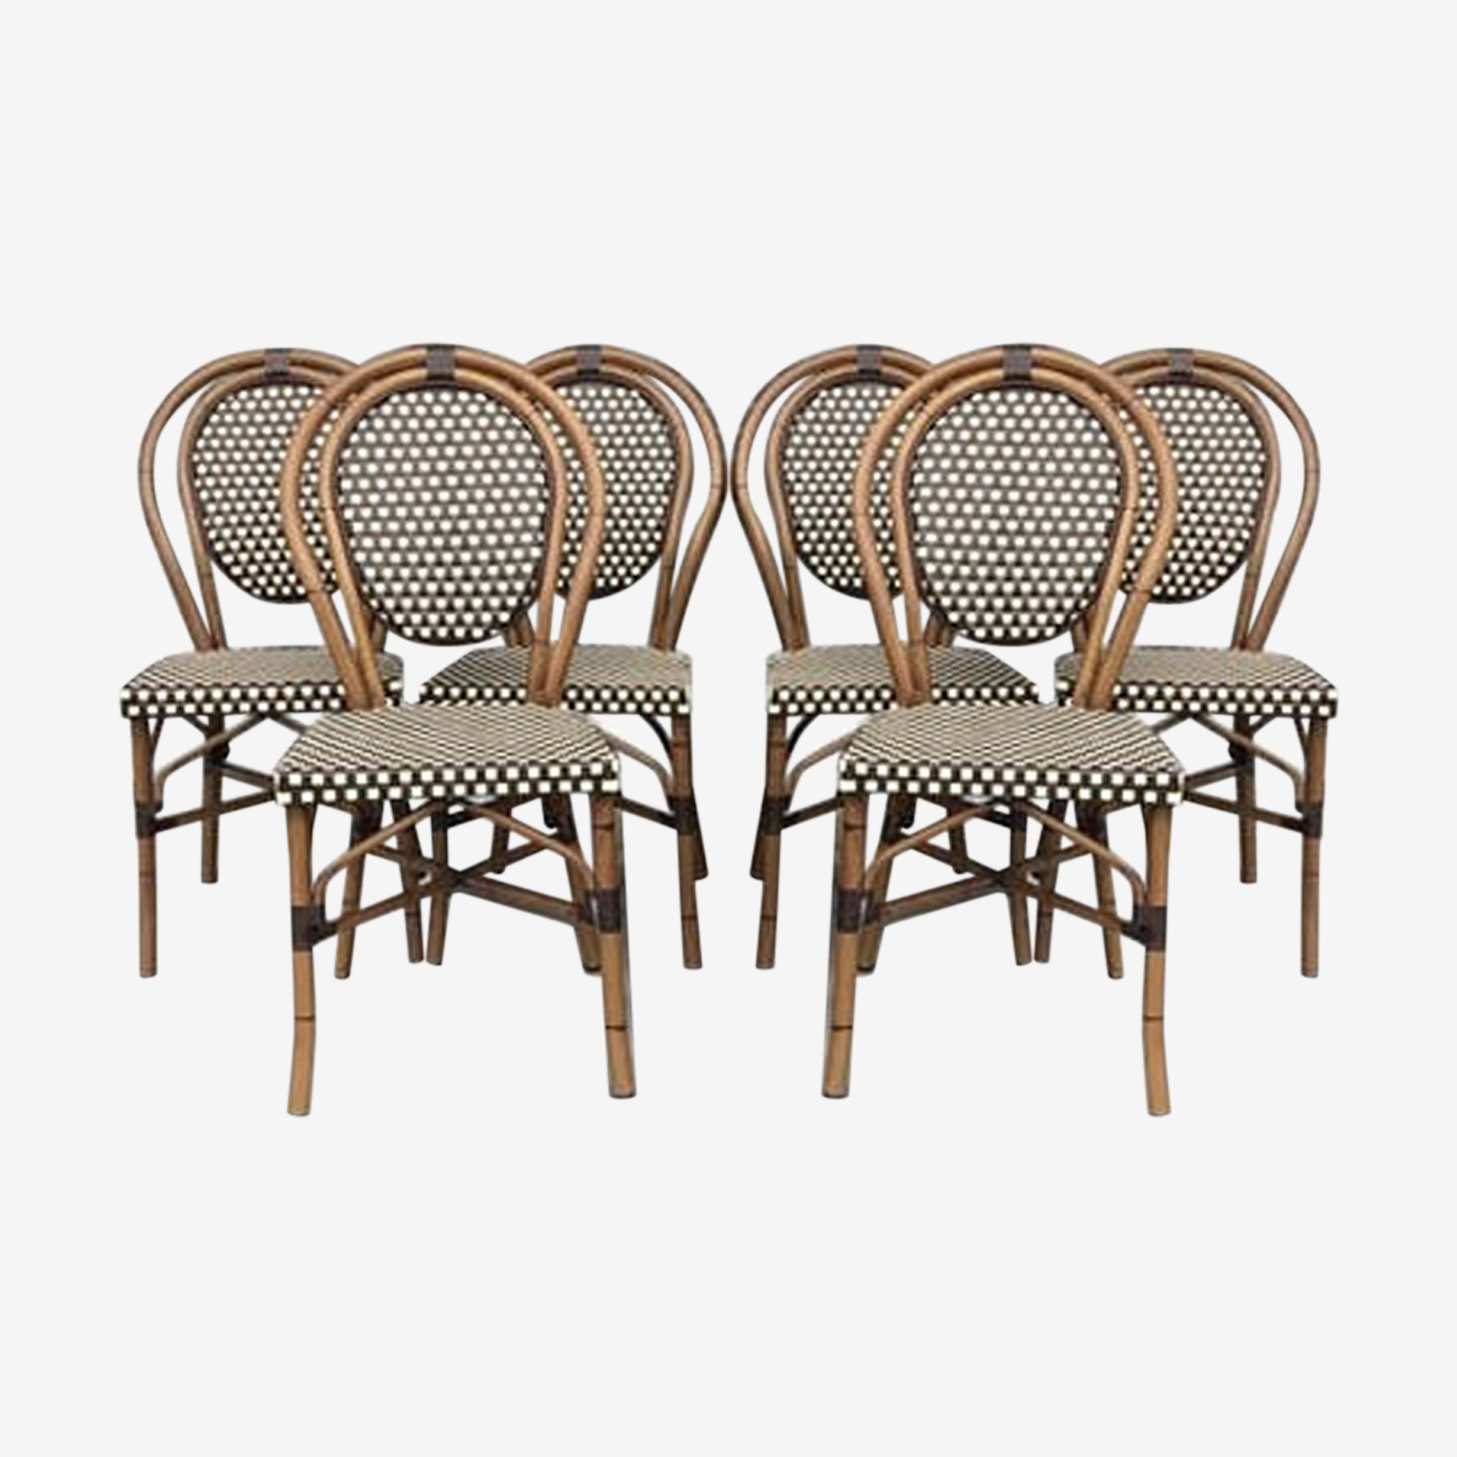 Set of 6 chairs of Parisian Bistro